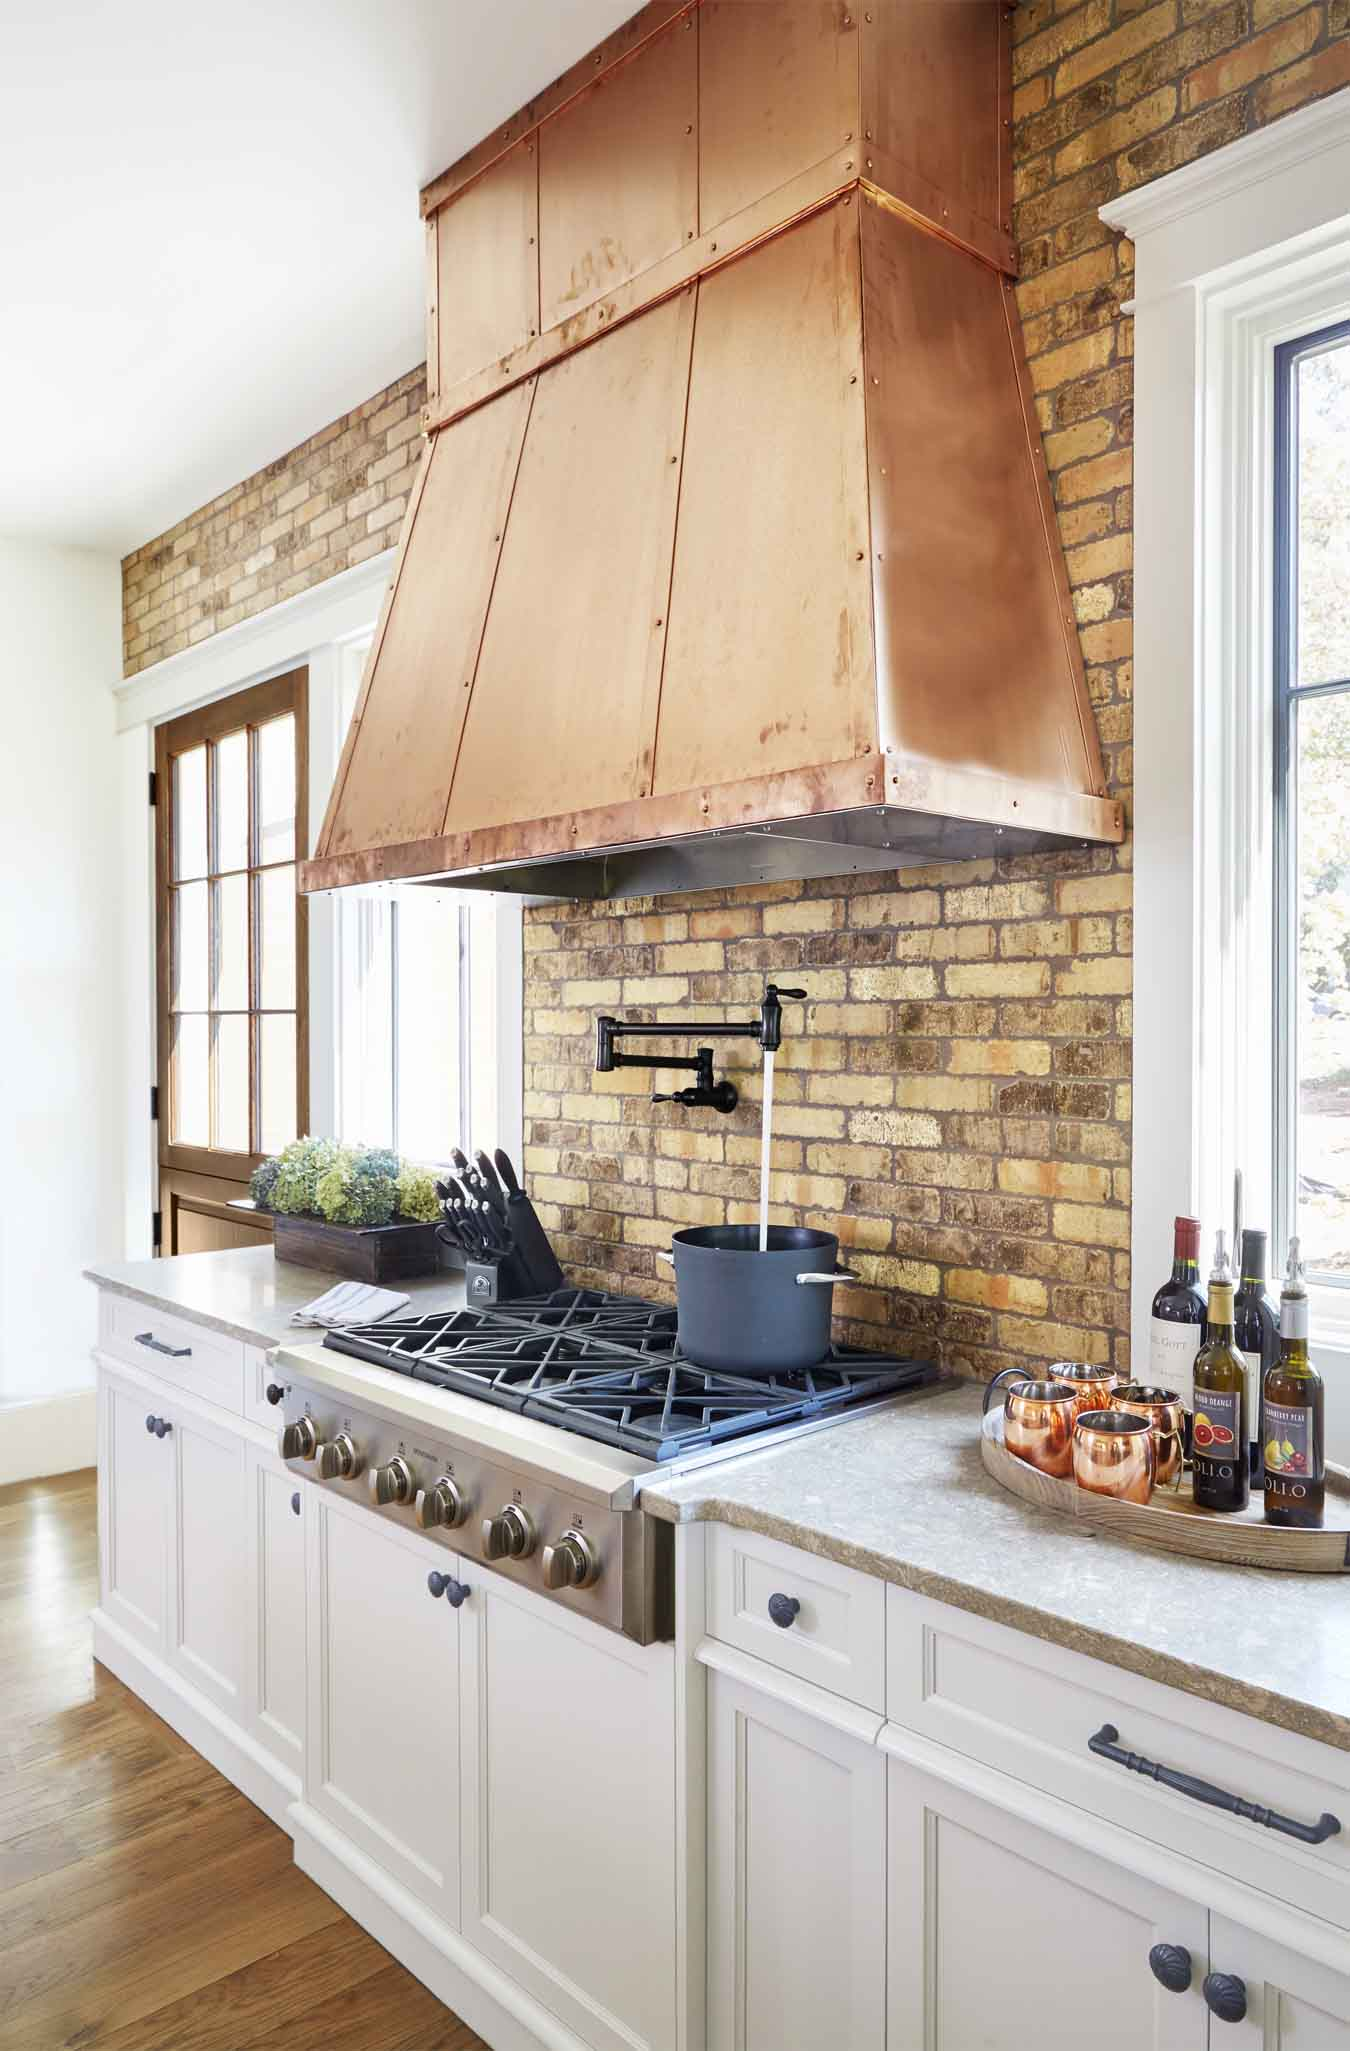 2017 01 diy kitchen cabinets in south africa -  Africa 2017 01 Diy Kitchen Cabinets In South Download